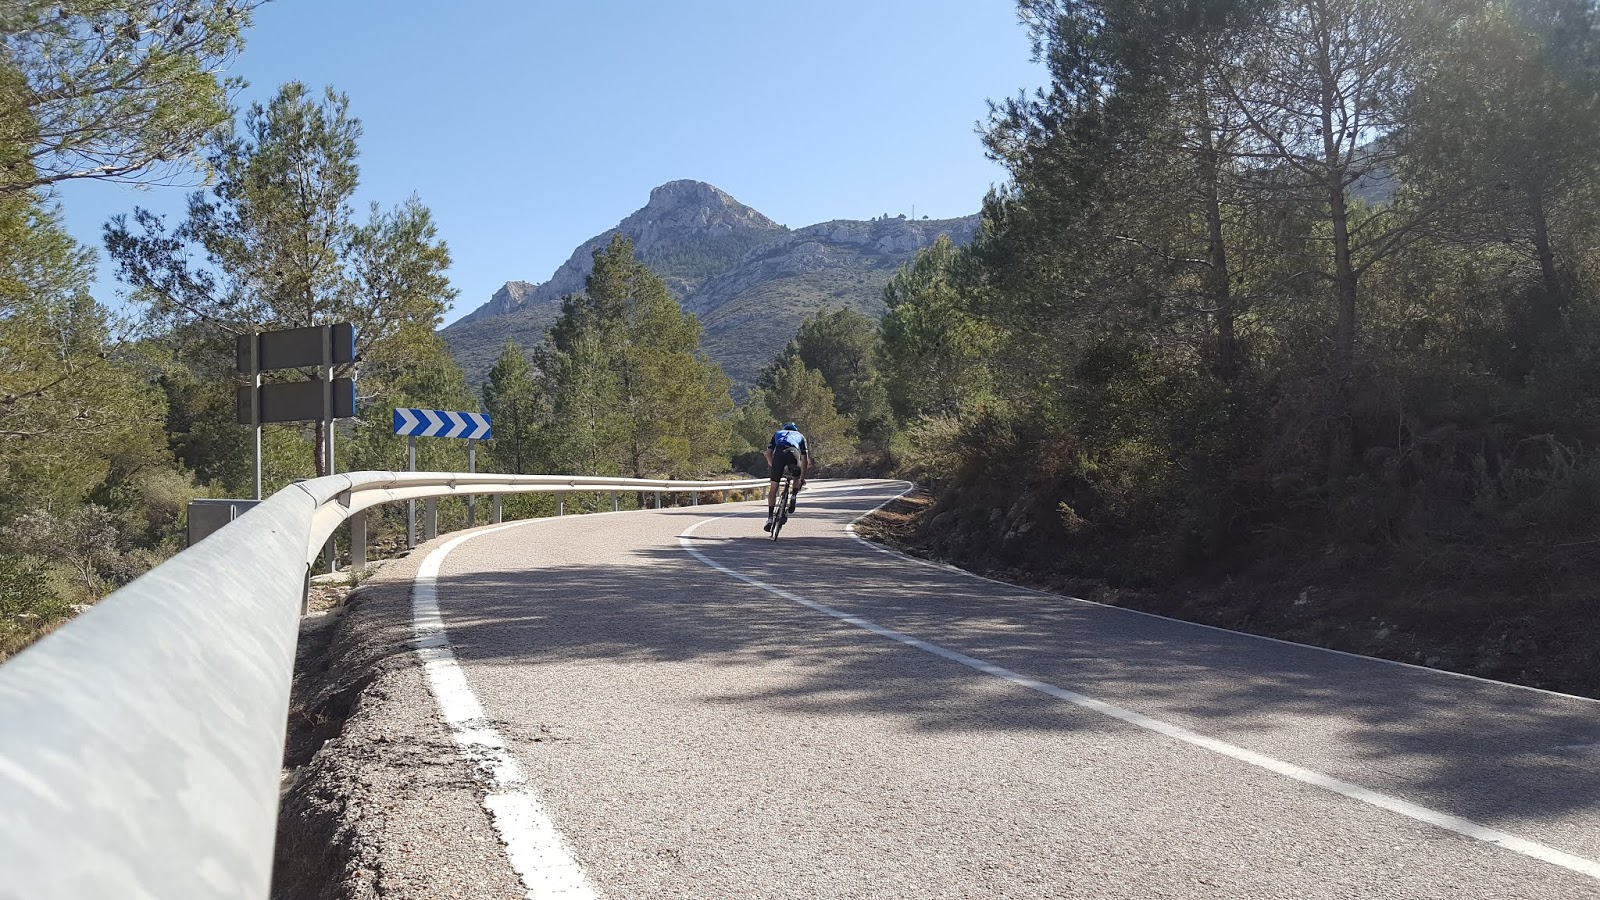 S-bends on northern ascent of Coll de Rates, Alicante